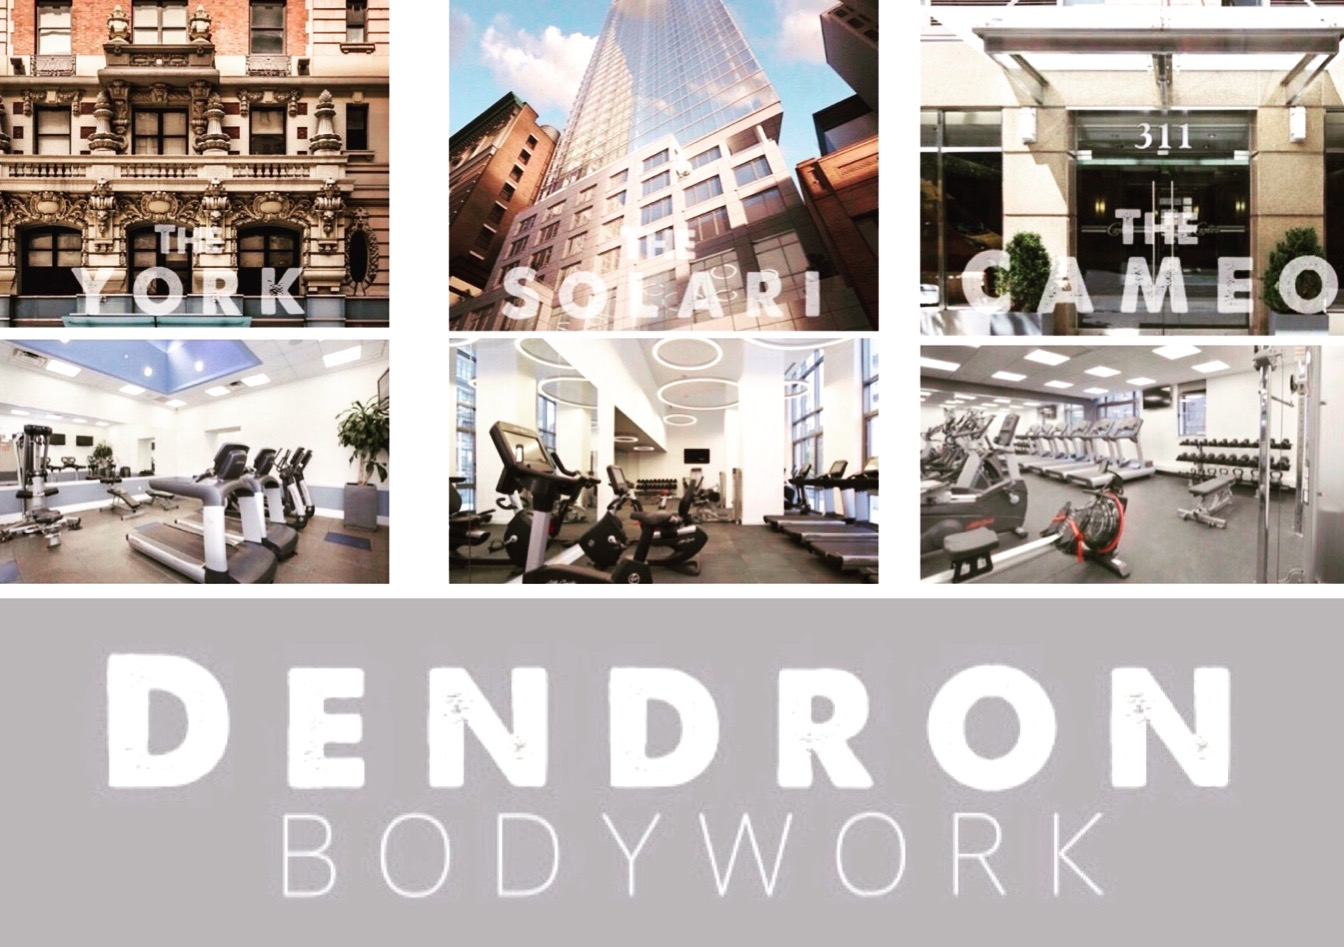 DENDRON IS PROUD TO ANNOUNCE THAT WE ARE NOW THE EXCLUSIVE ON SITE FITNESS AND AMENITIES SERVICE COMPANY TO THESE 3 AMAZING MANHATTAN LOCATIONS. OUR TEAM WILL PROVIDE THE HIGHEST LEVEL OF PERSONAL TRAINING, SMALL GROUP CLASSES AND MASSAGE THERAPY.